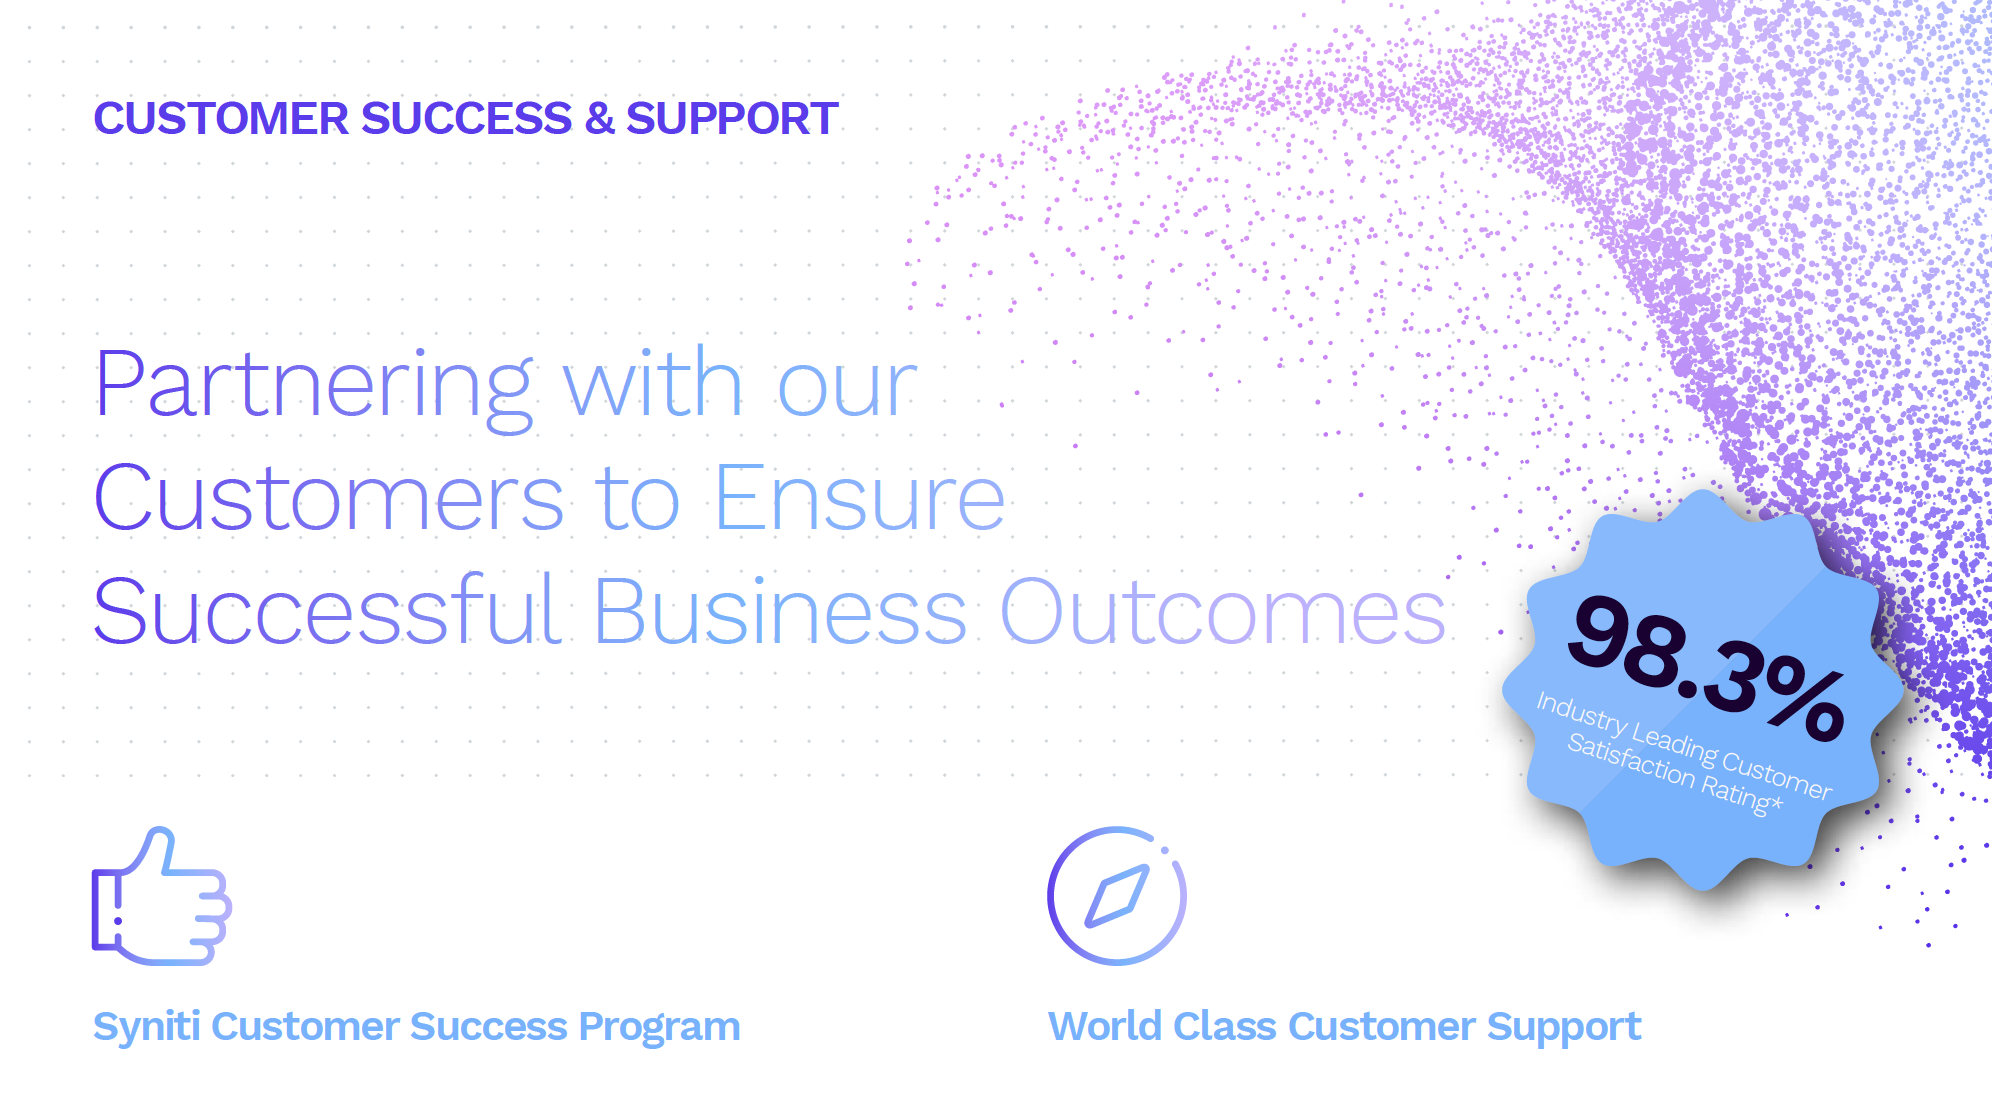 Customer Success & Support